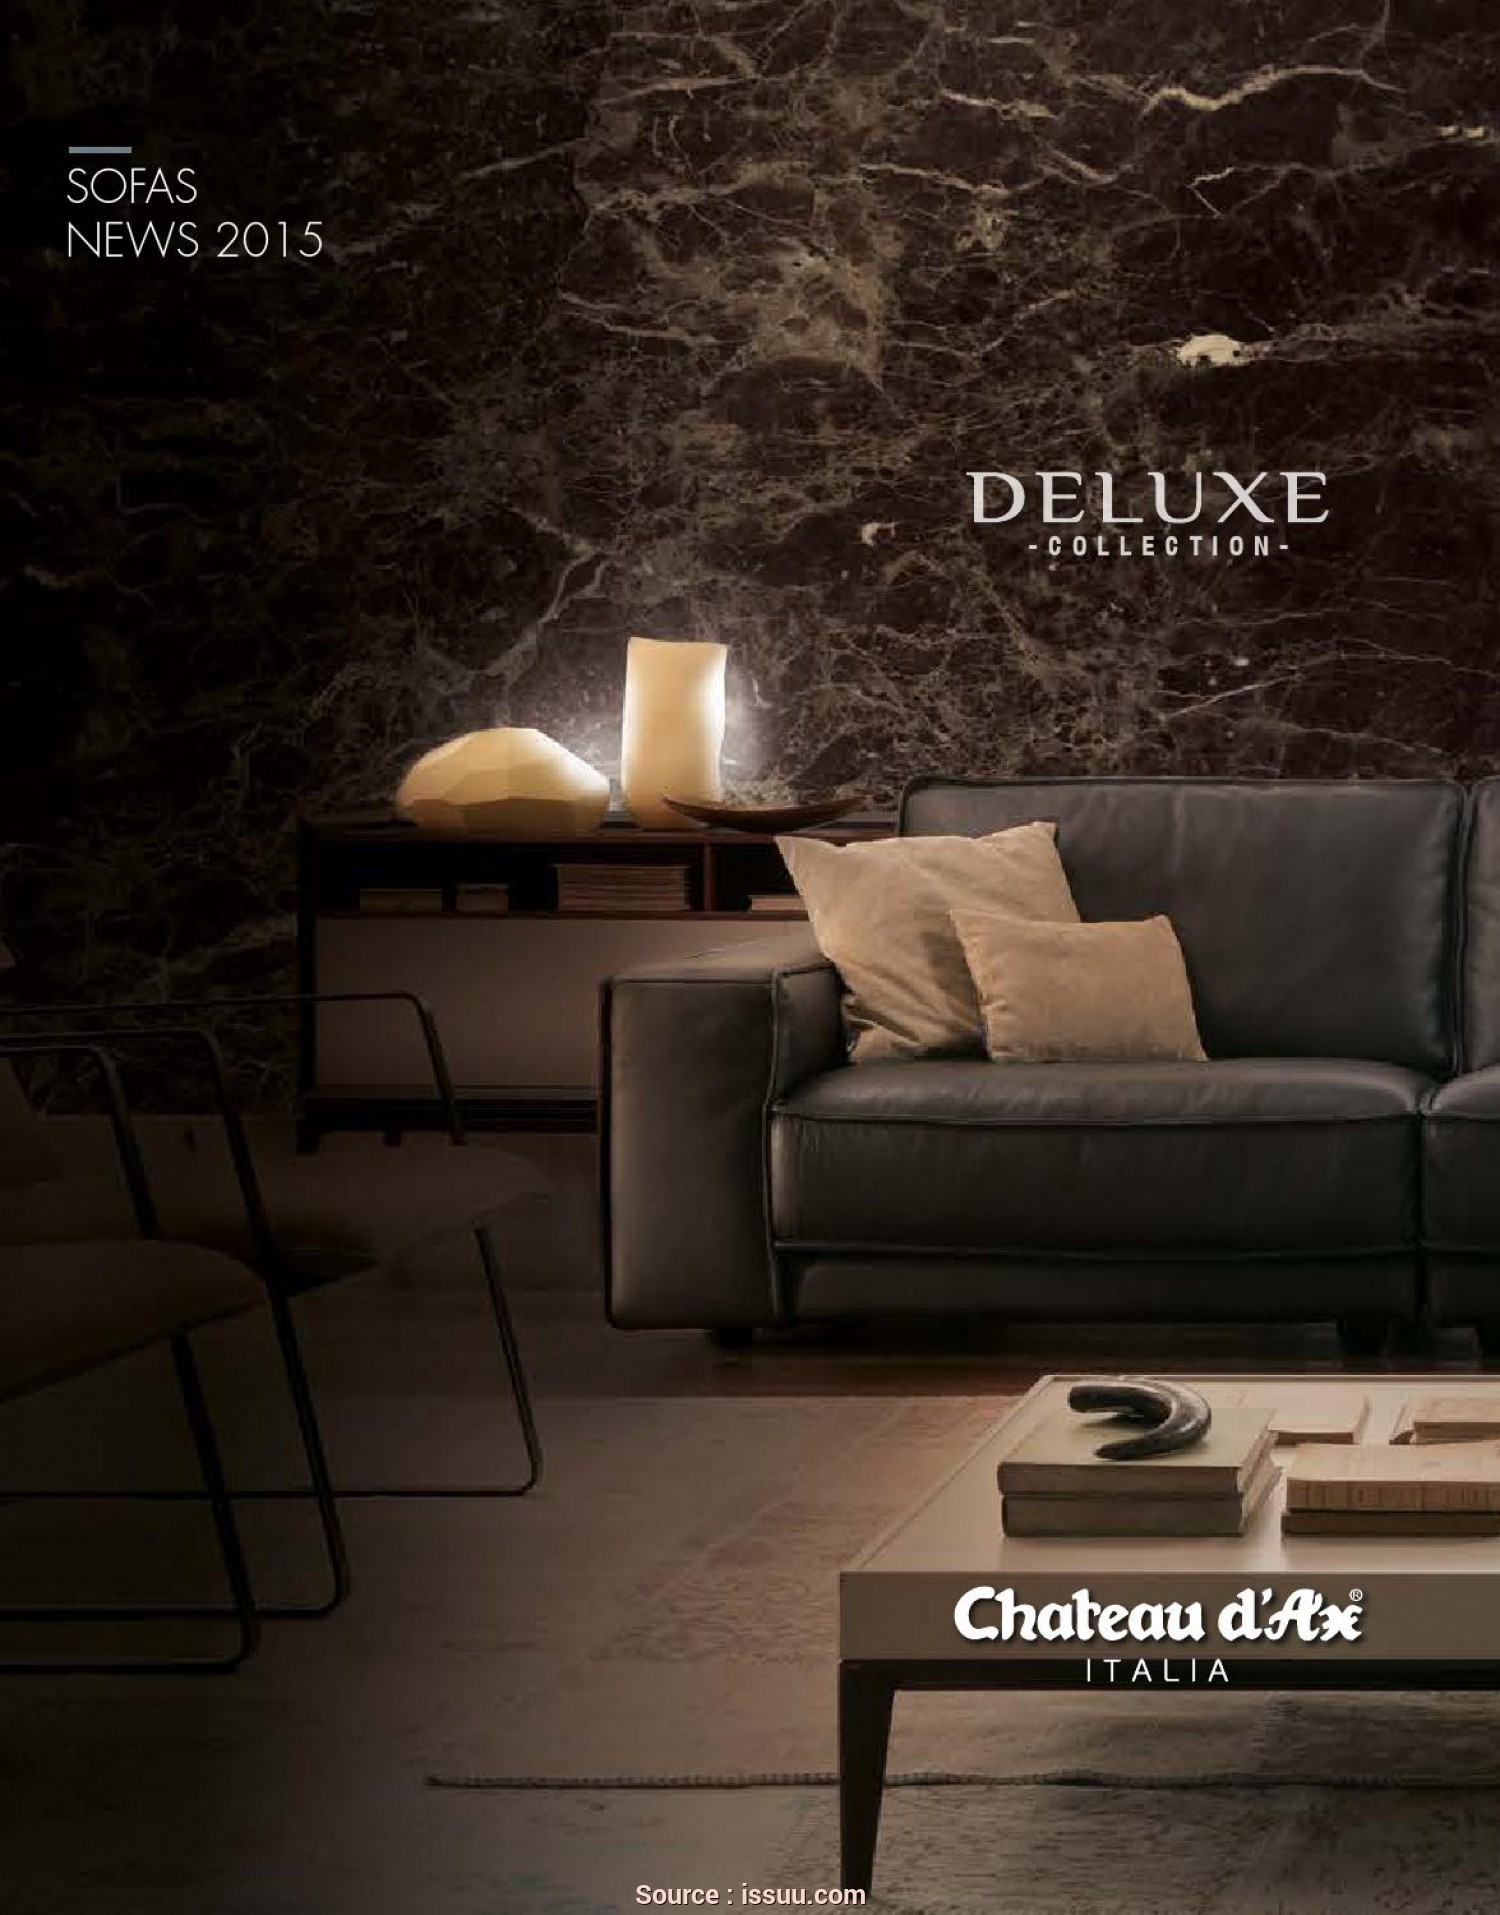 Divano Olga Chateau D'Ax, Eccezionale Chateau D' Ax, Deluxe Collection (Cat Sofas Update 2015) By Decointeriors, Issuu